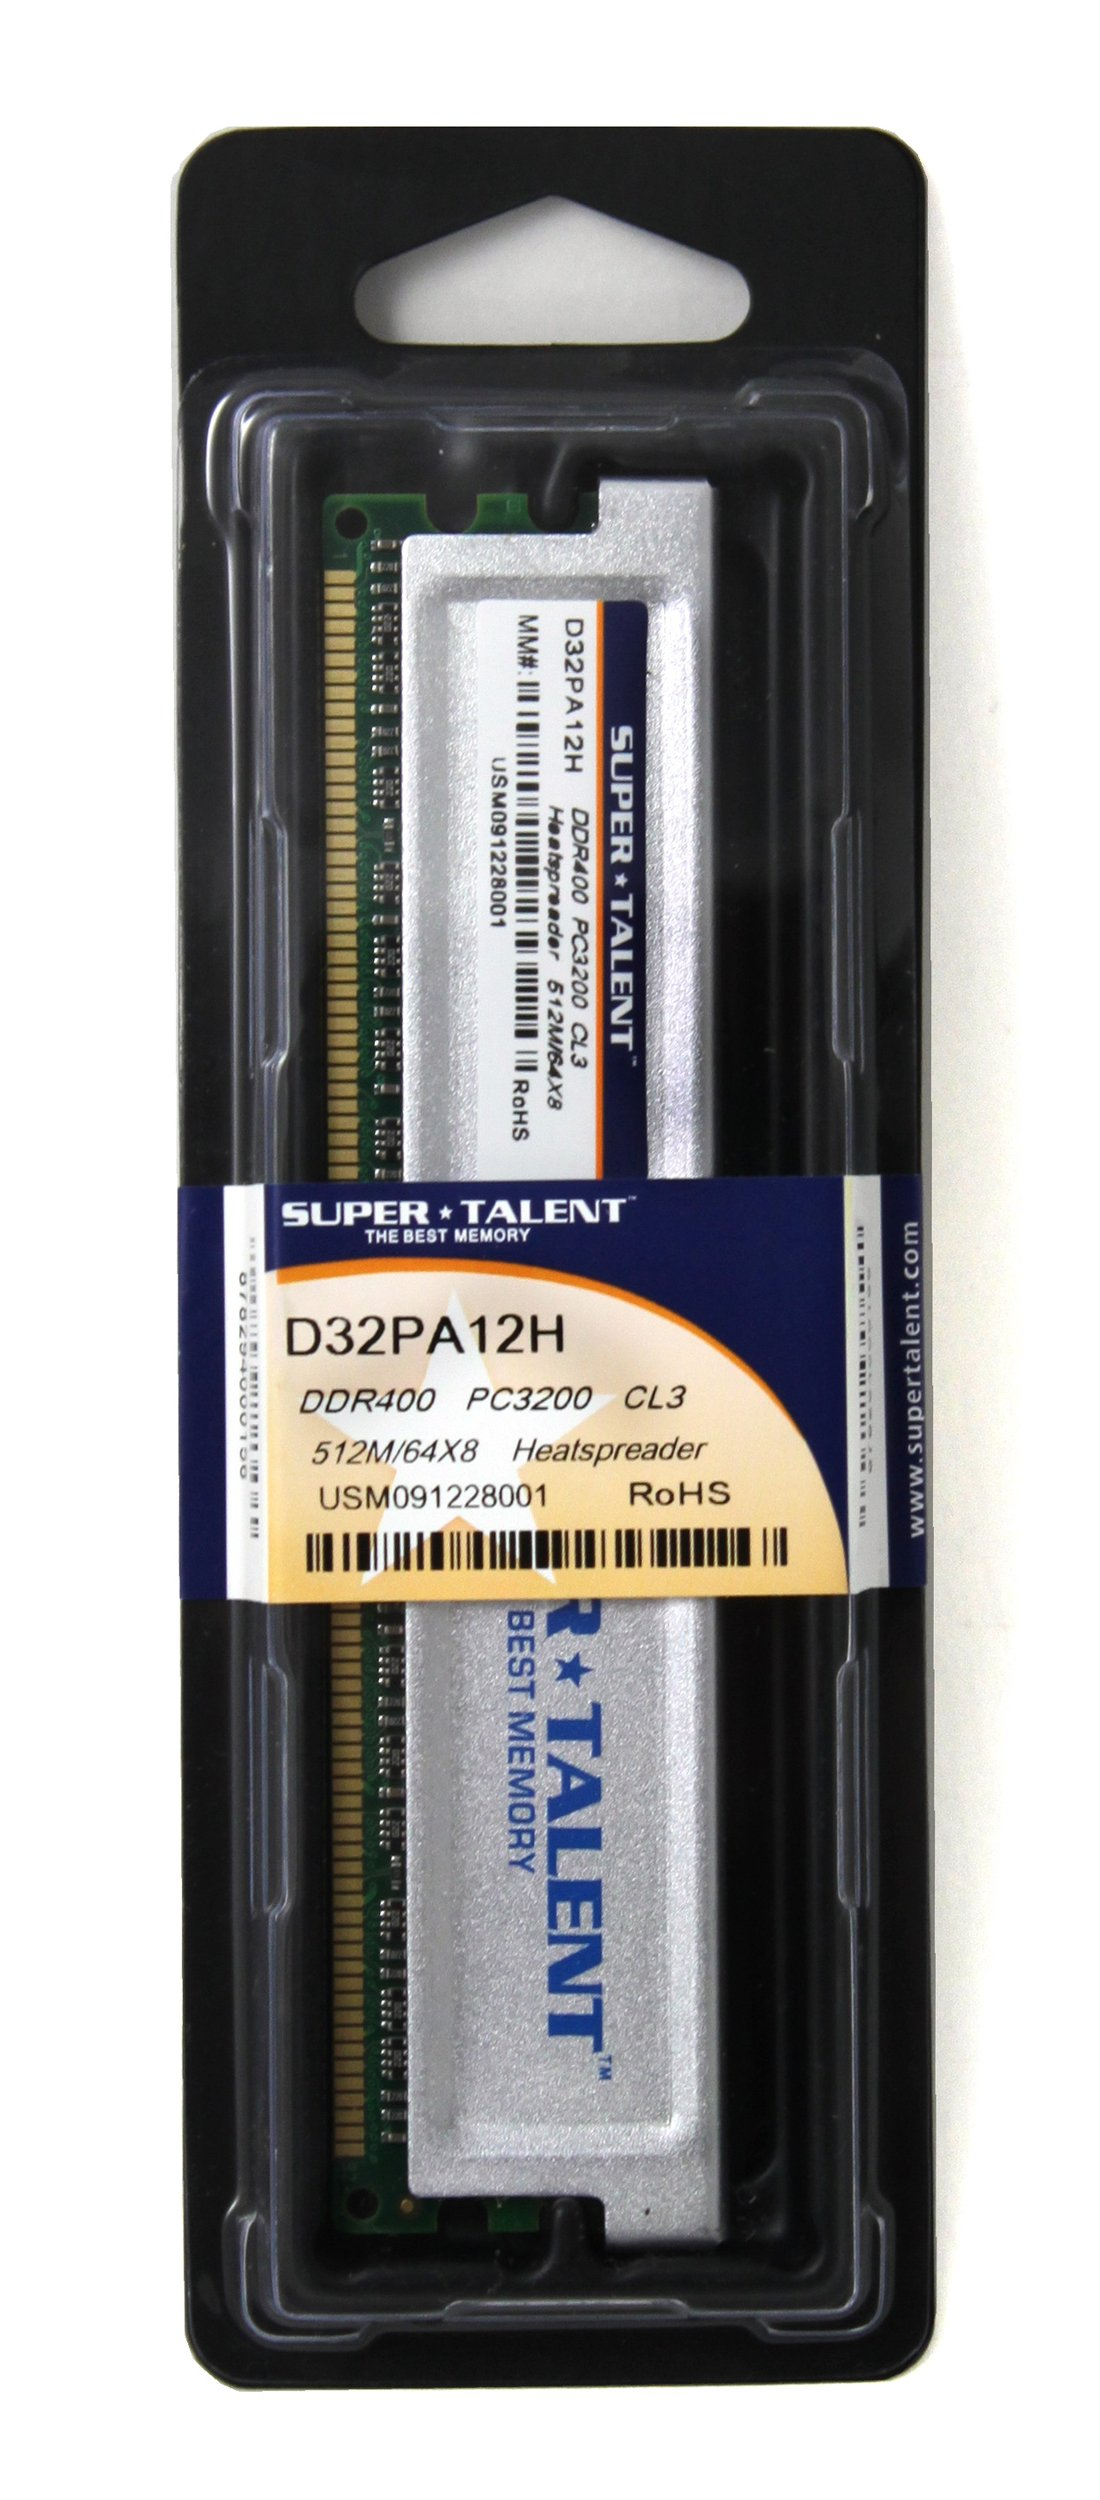 Super Talent DDR400 512MB/64X8 CL3 8CH Memory (PC and MAC G5) D32PA12H by Super Talent (Image #2)